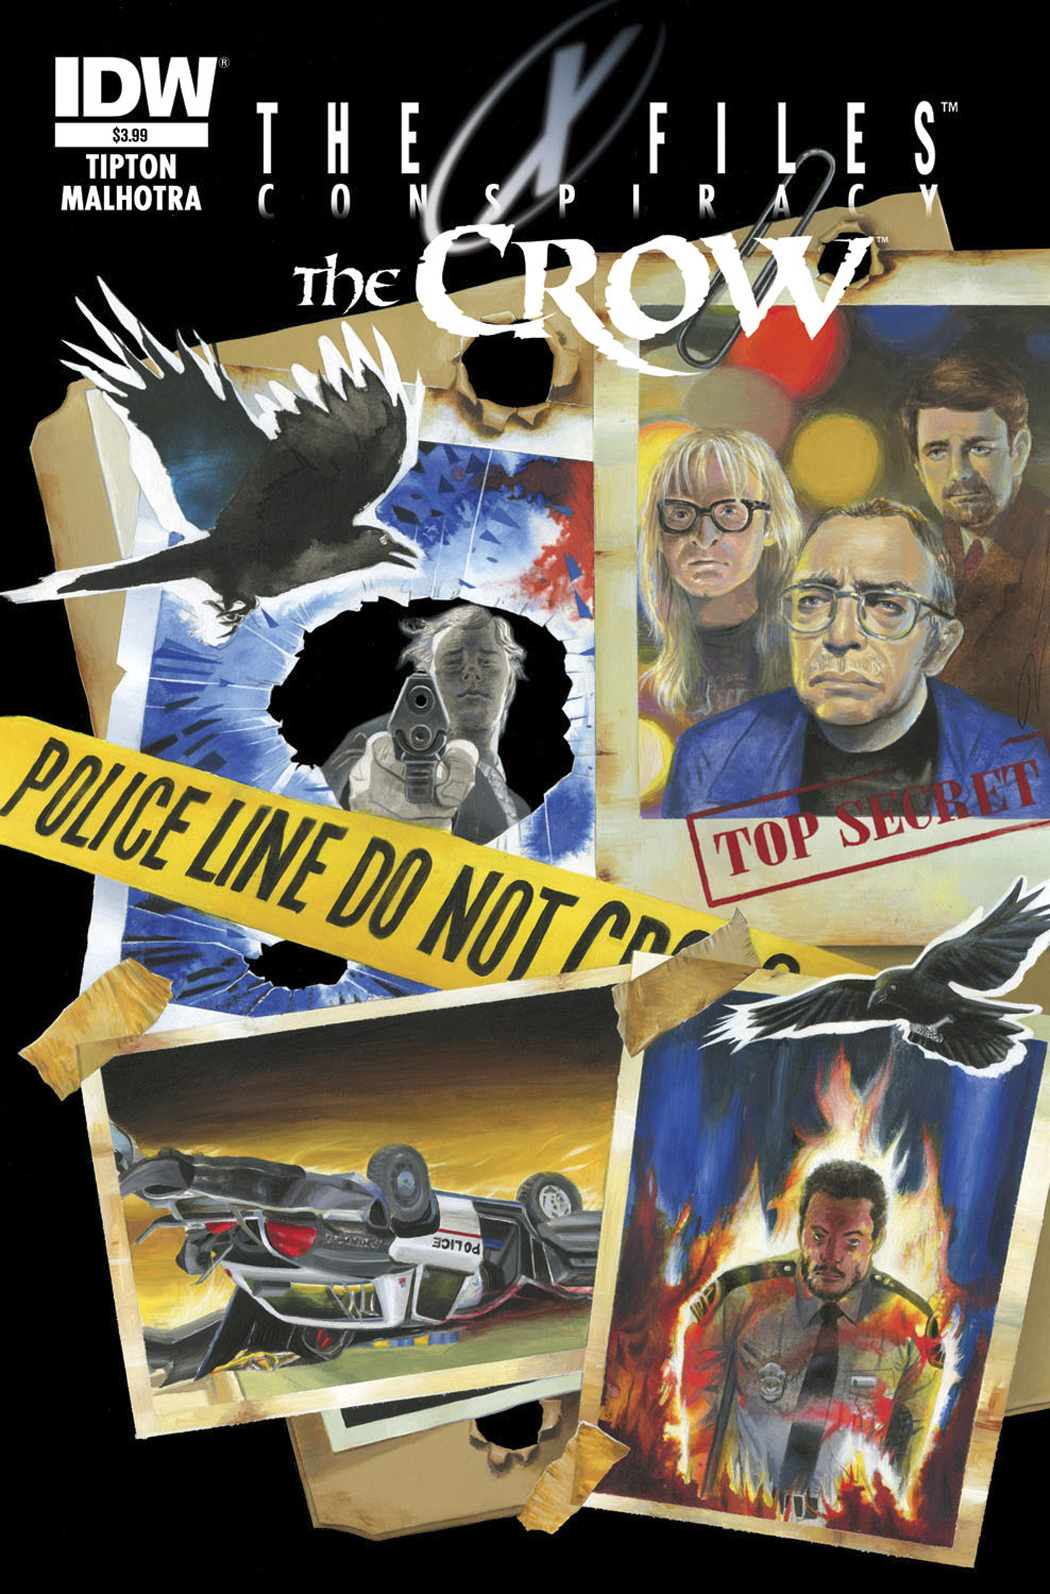 X-FILES CONSPIRACY CROW #1 FREE 25 COPY INCV